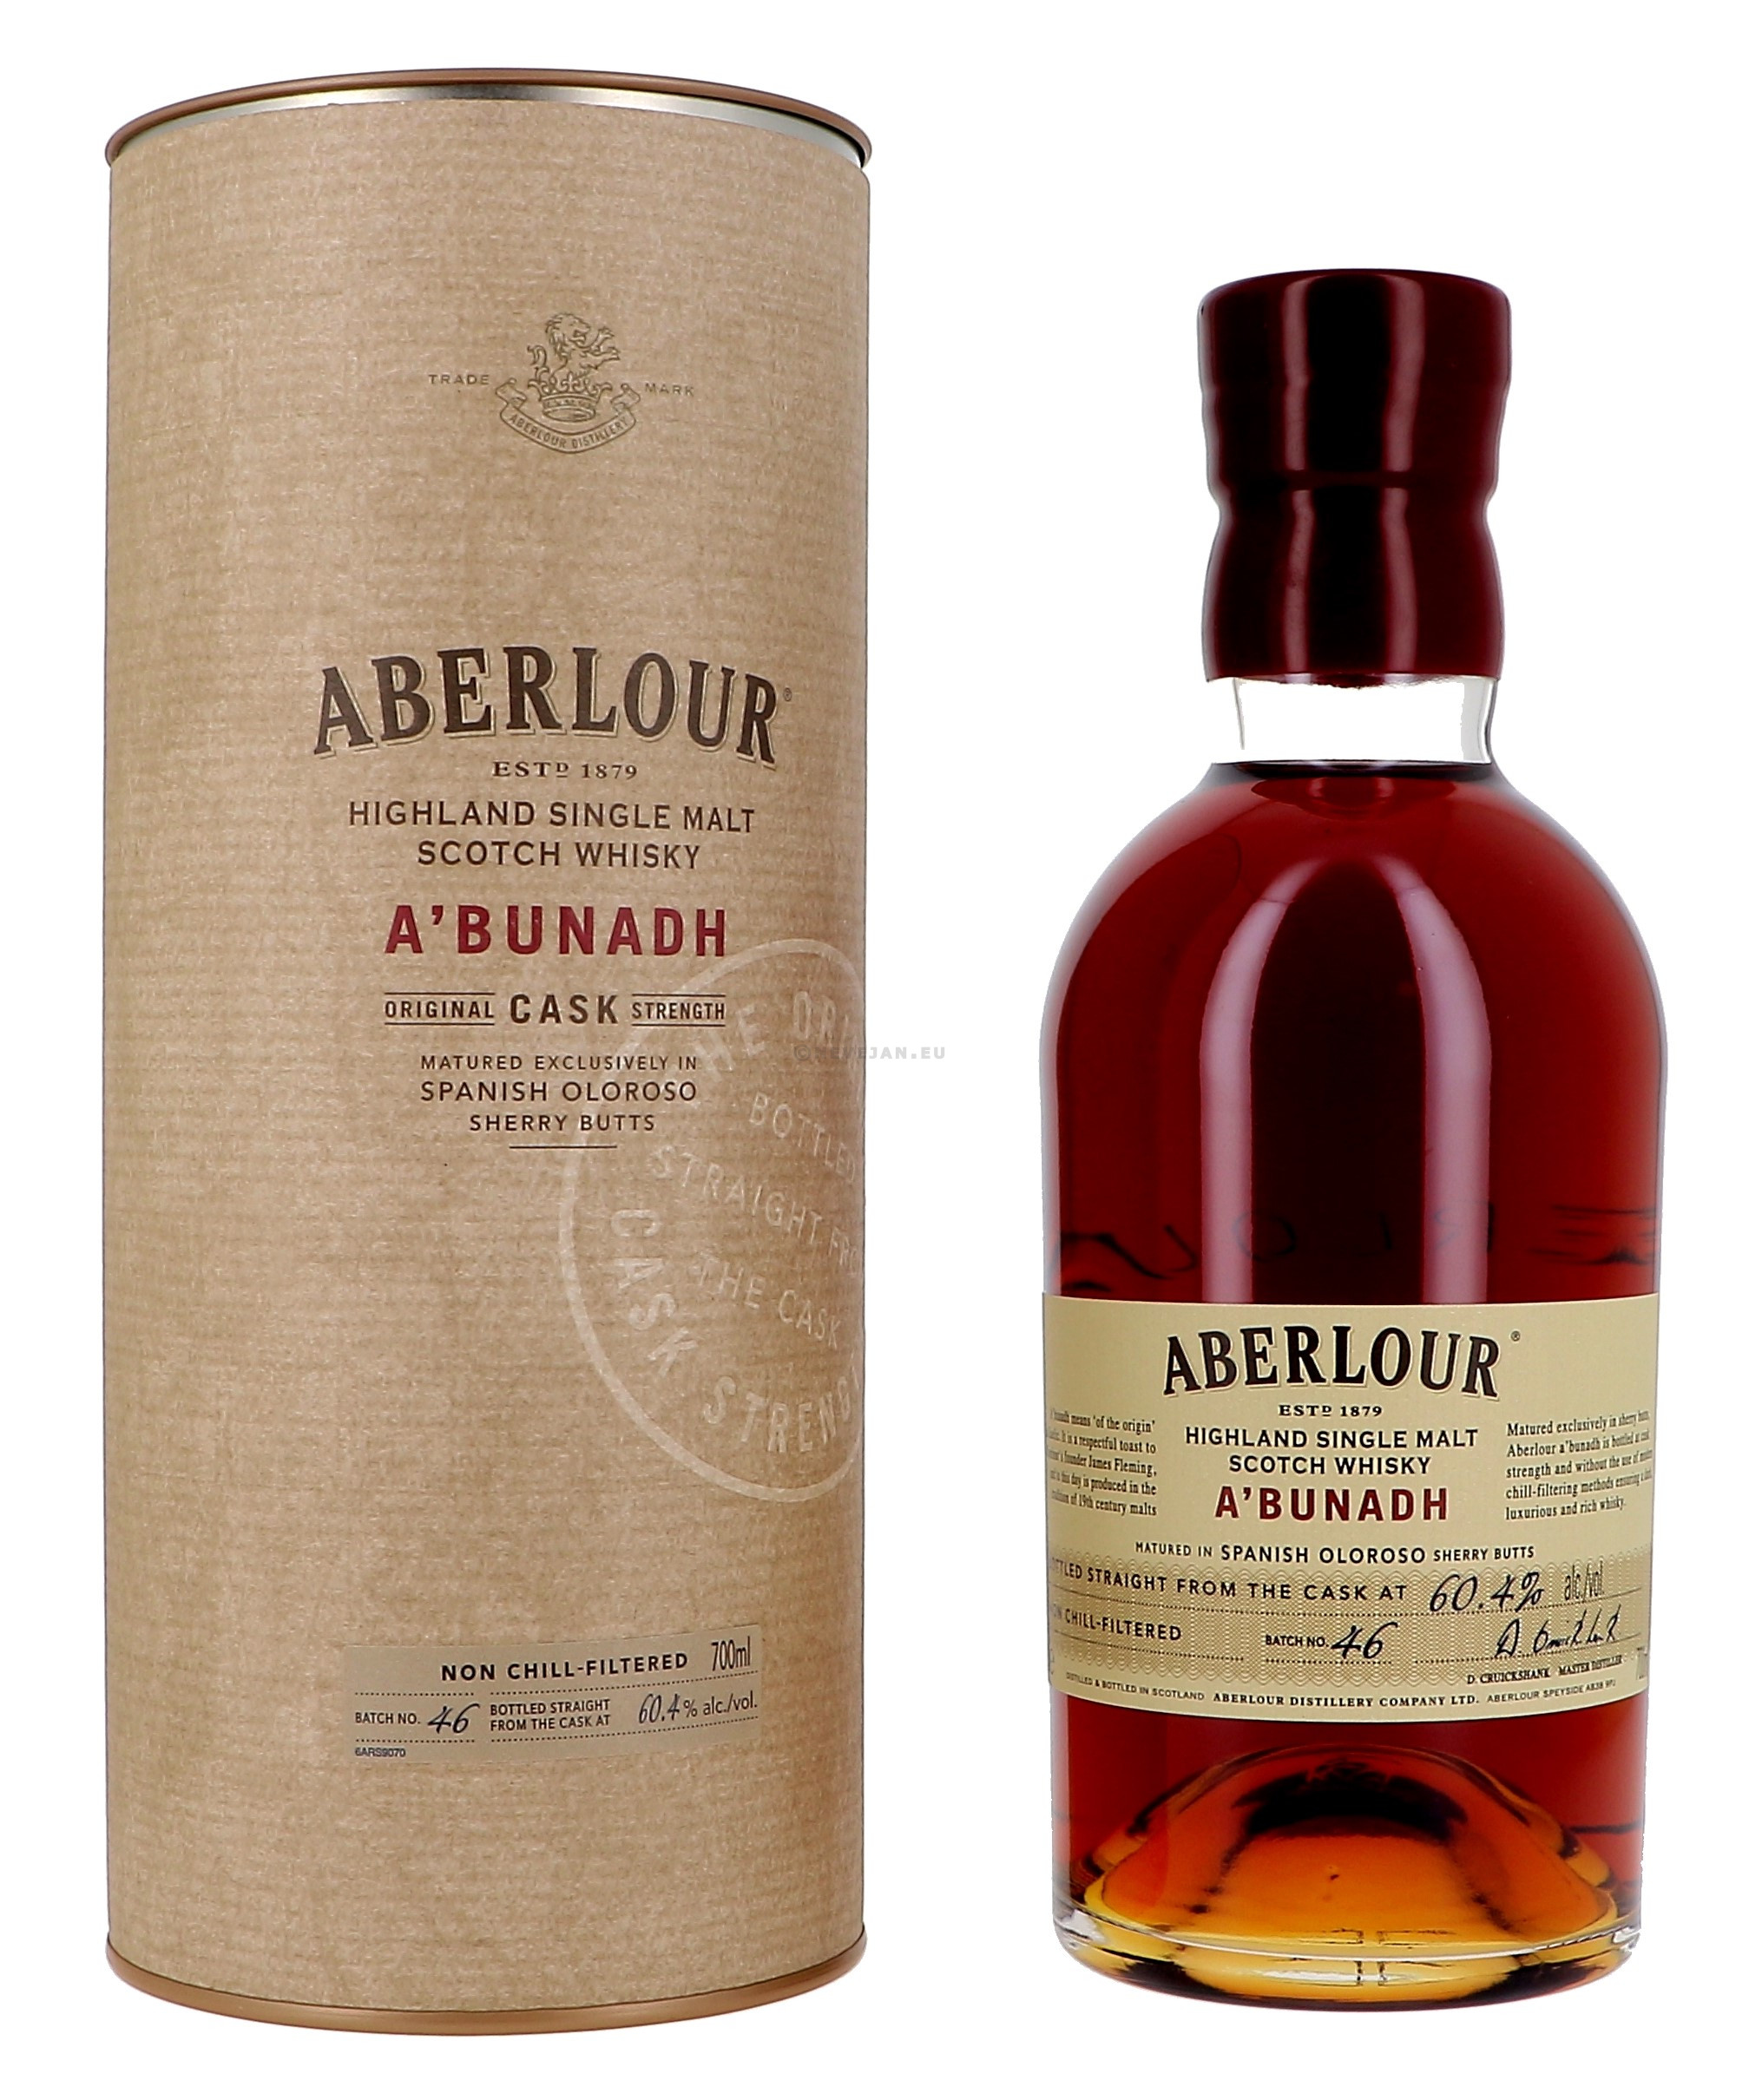 Aberlour A'Bunadh Cask Strenght 70cl 59.6% Highland Single Malt Scotch Whisky (Whisky)